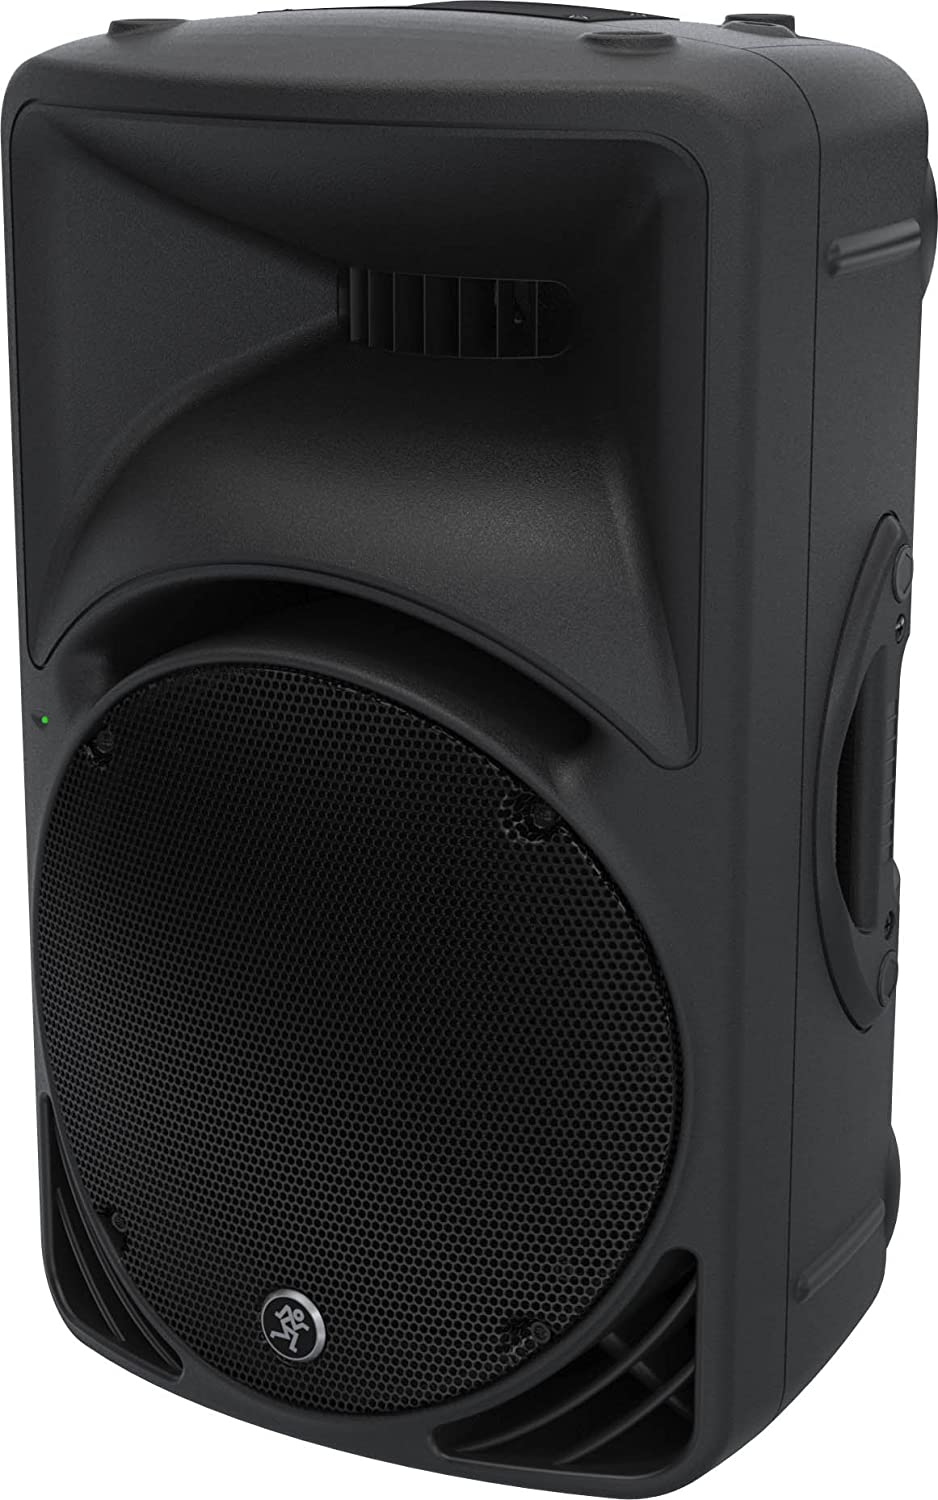 Mackie SRM Series, 12-Inch, 1000W High-Definition Portable Powered Loudspeaker (SRM450v3)